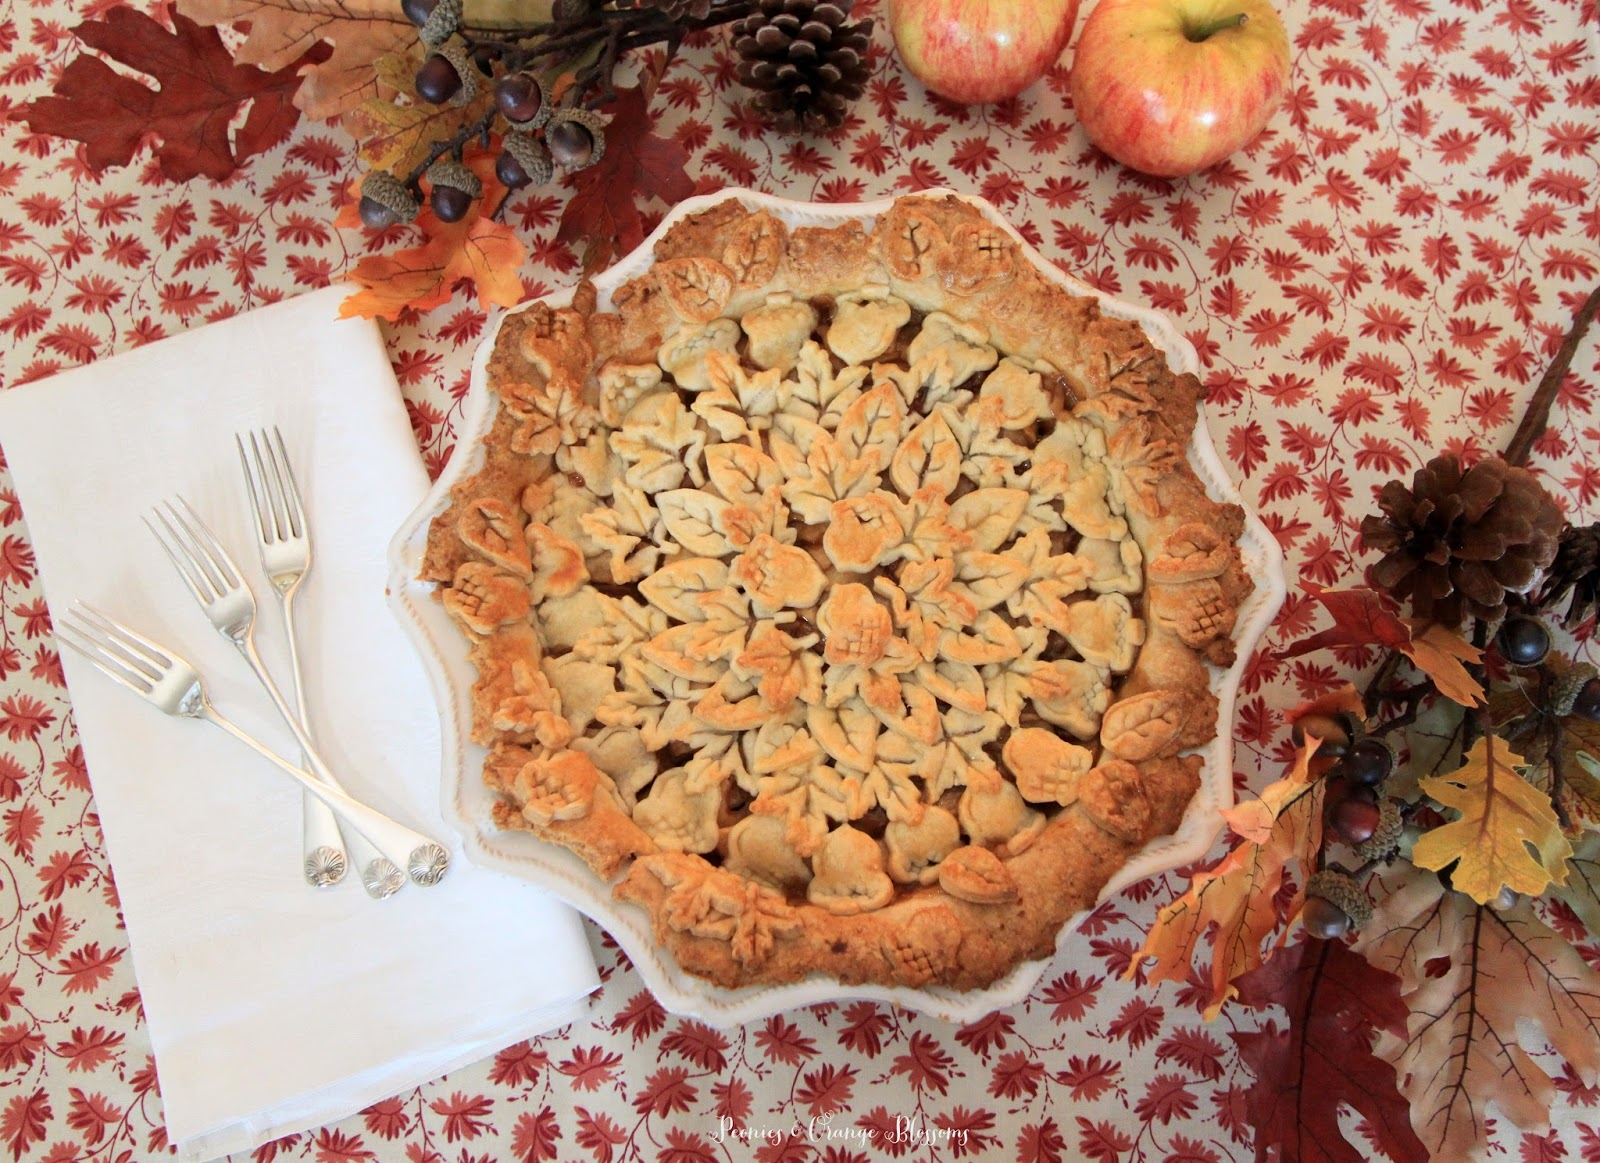 The best homemade apple pie recipe - seriously, I have been making this for years and get rave review from everyone!